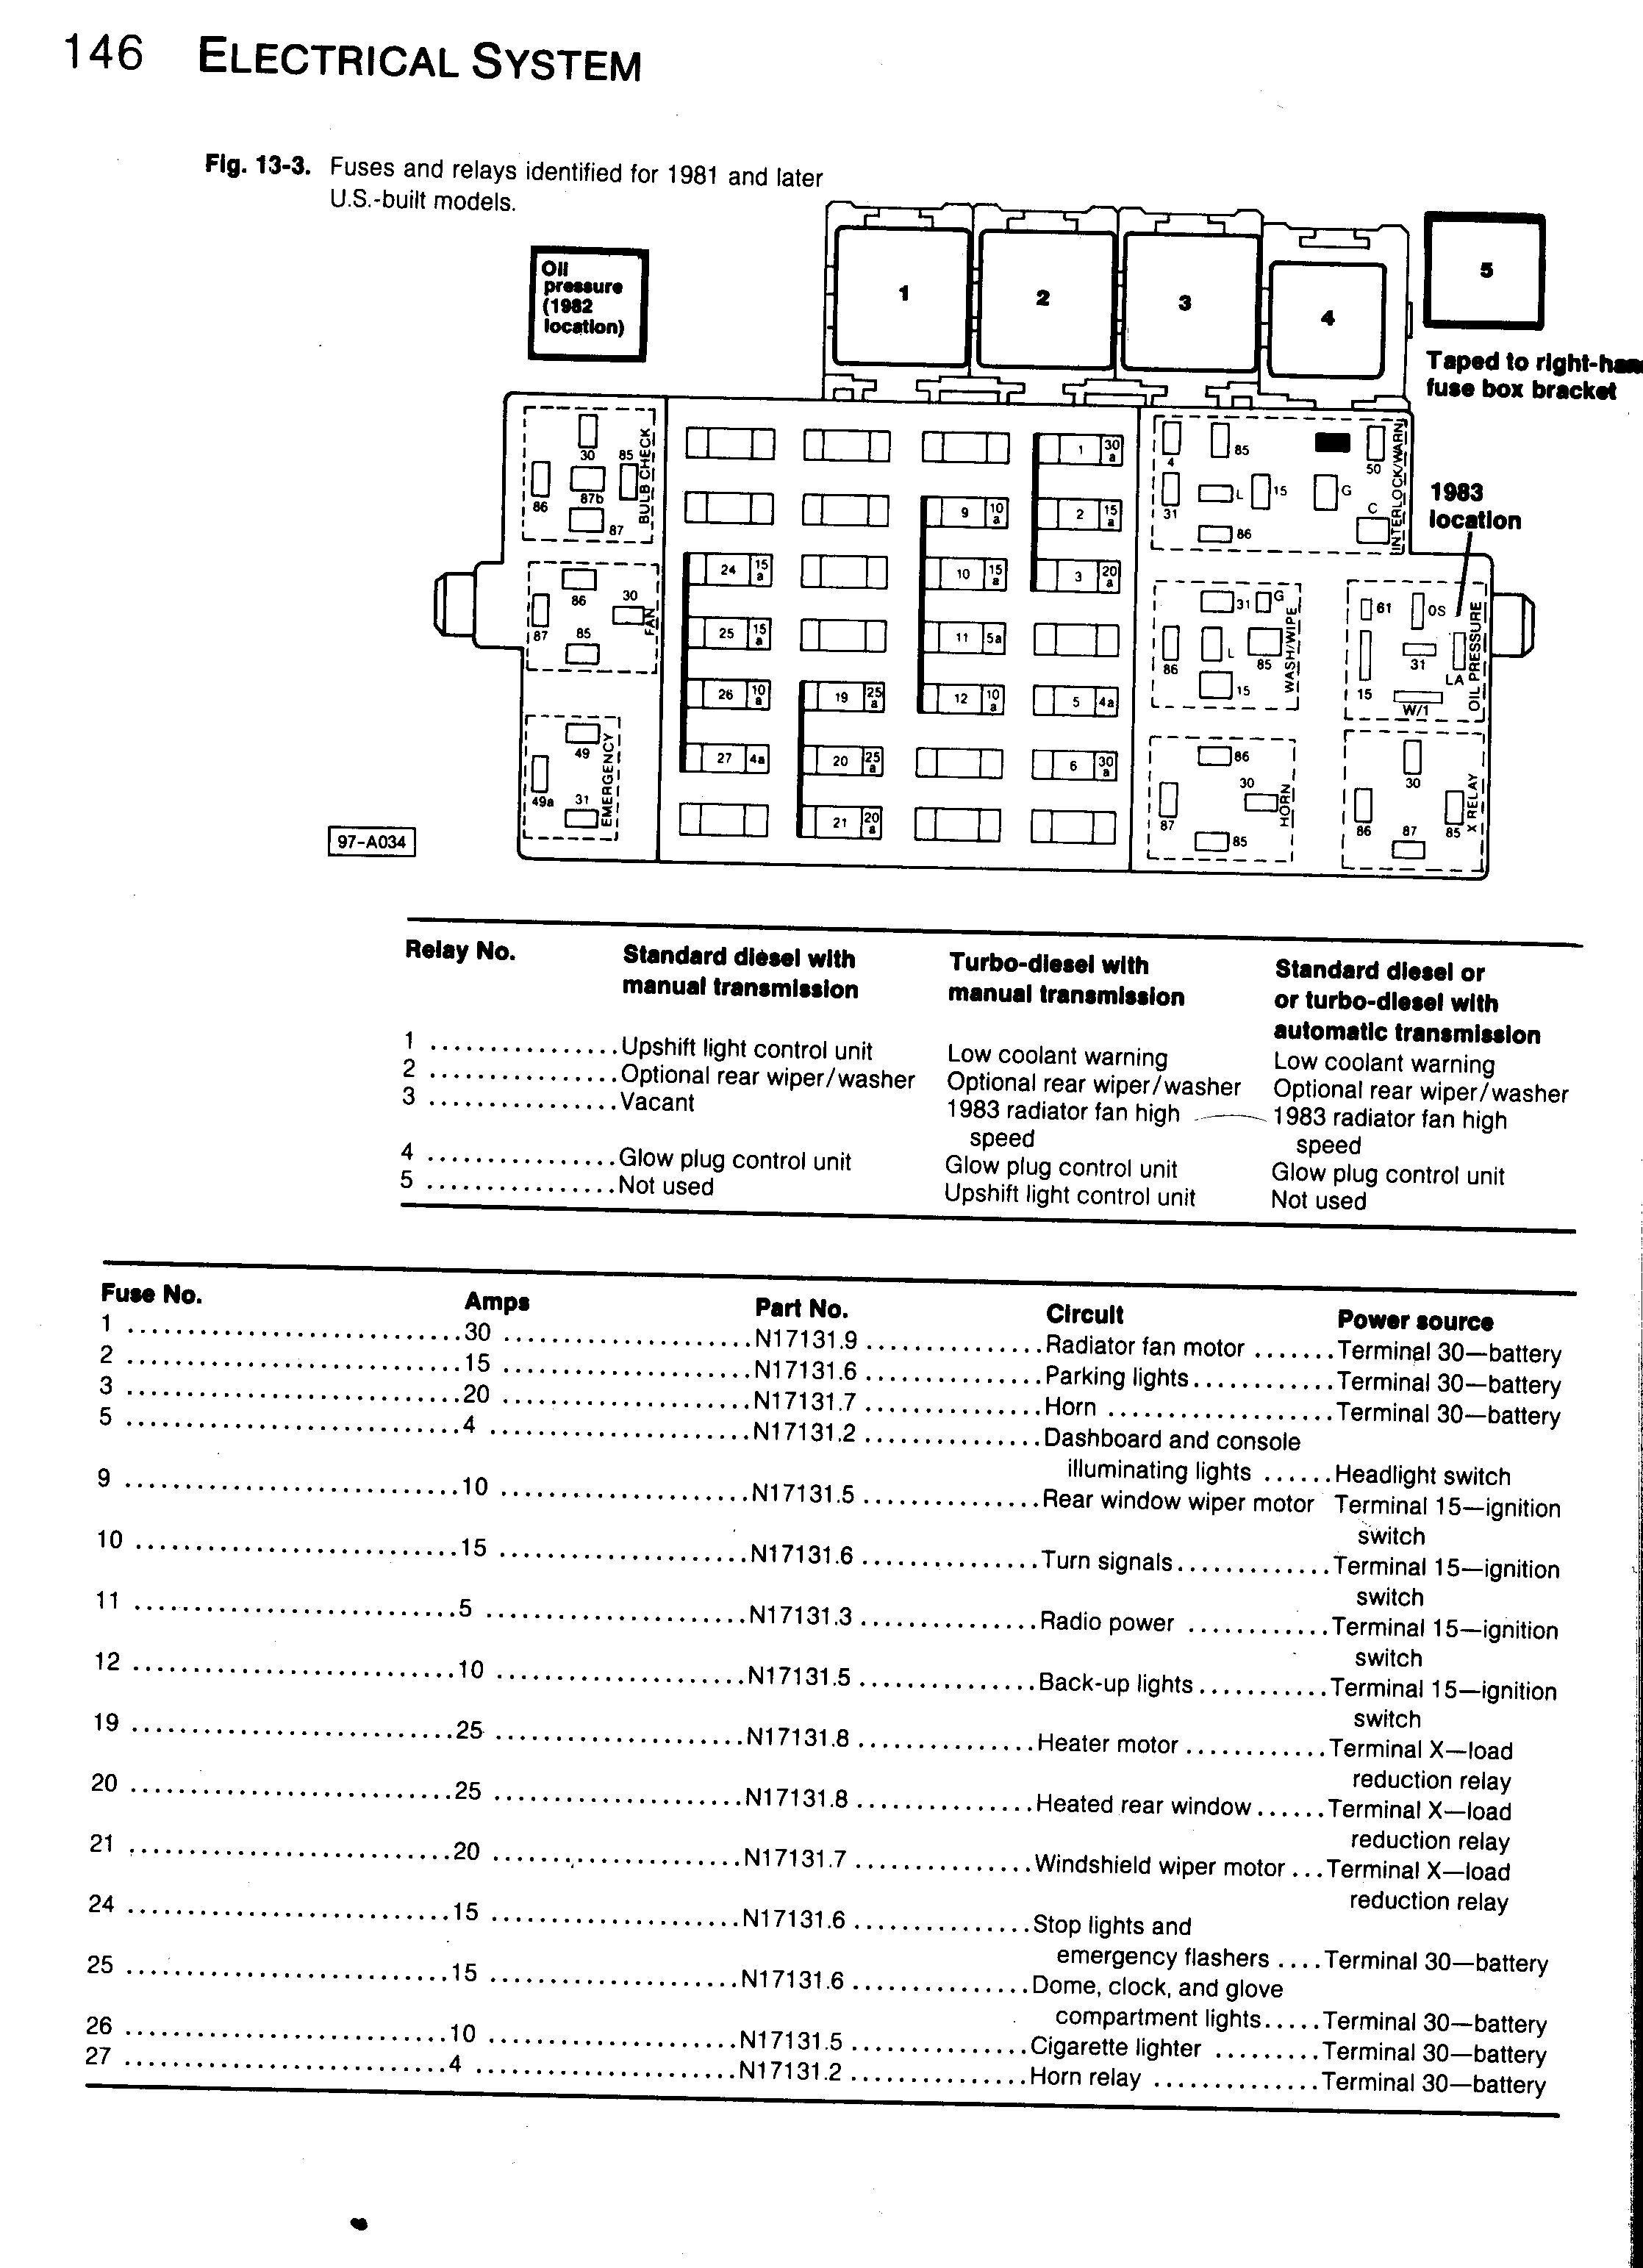 Jetta Fuse Box Wiring Diagram Third Level 2006 4runner 2005 Volkswagen Location Diagrams